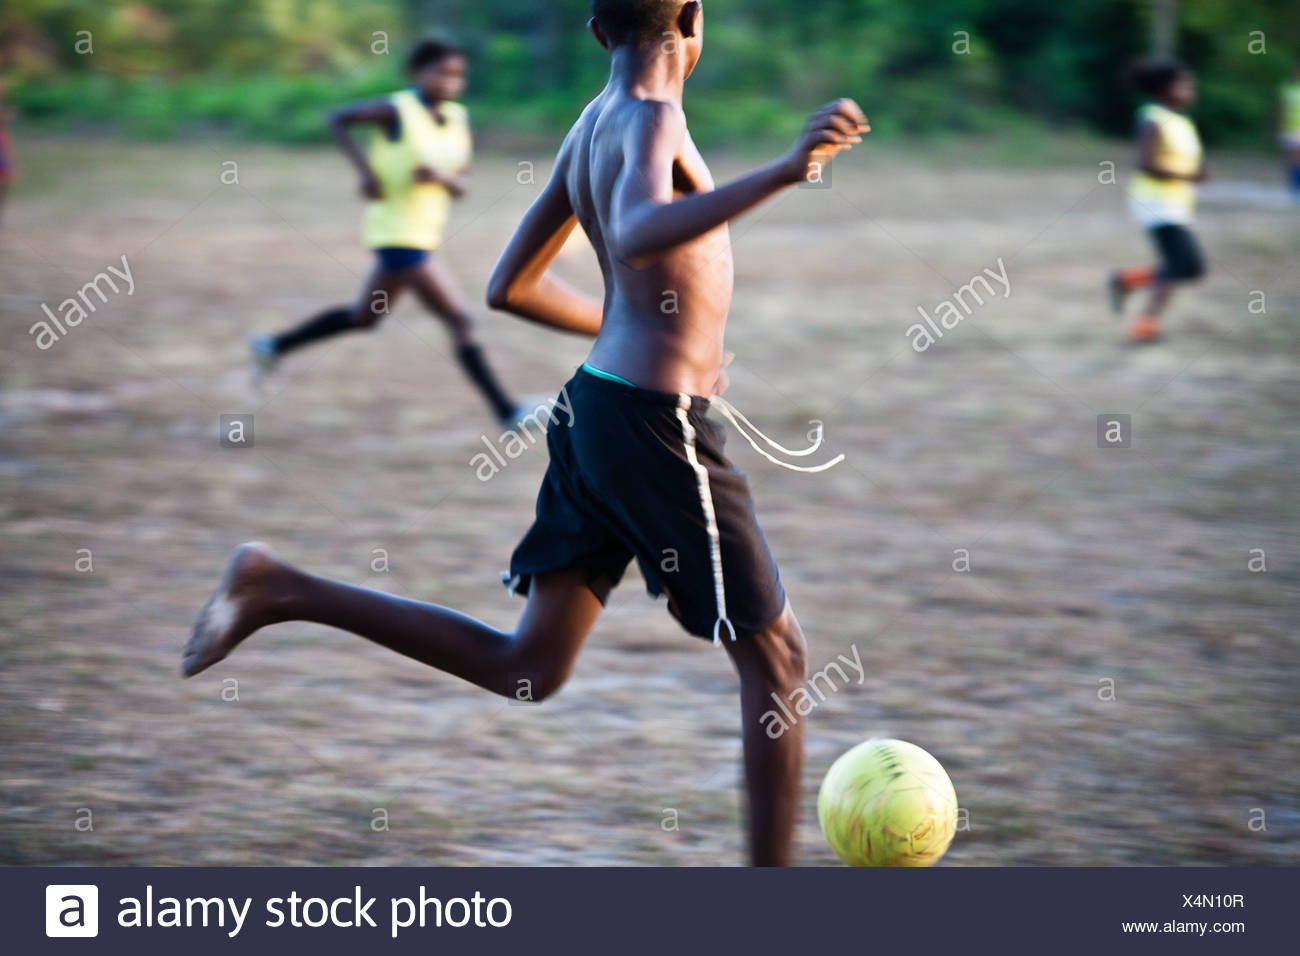 Countryside Brazil soccer. In Brazil black boys with remarkable talent for football usually have the nickname of Pelé. - Stock Image